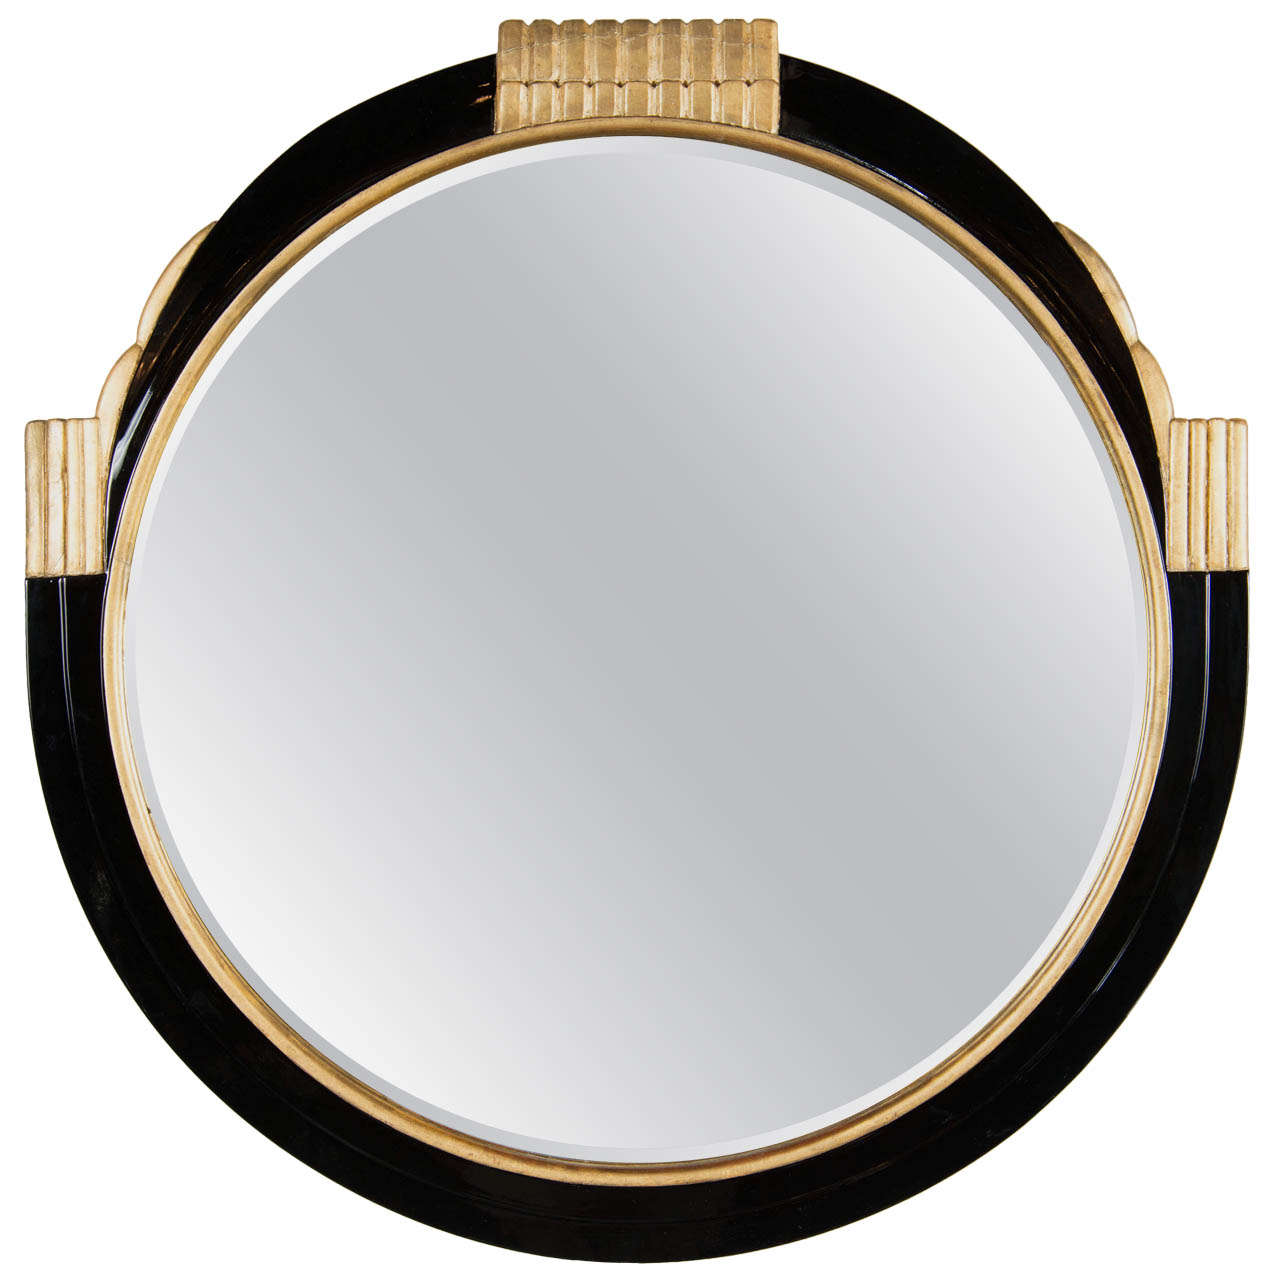 Art Deco Style Mirror Art Deco Round Mirror With Gilded Detailing In The Style Of